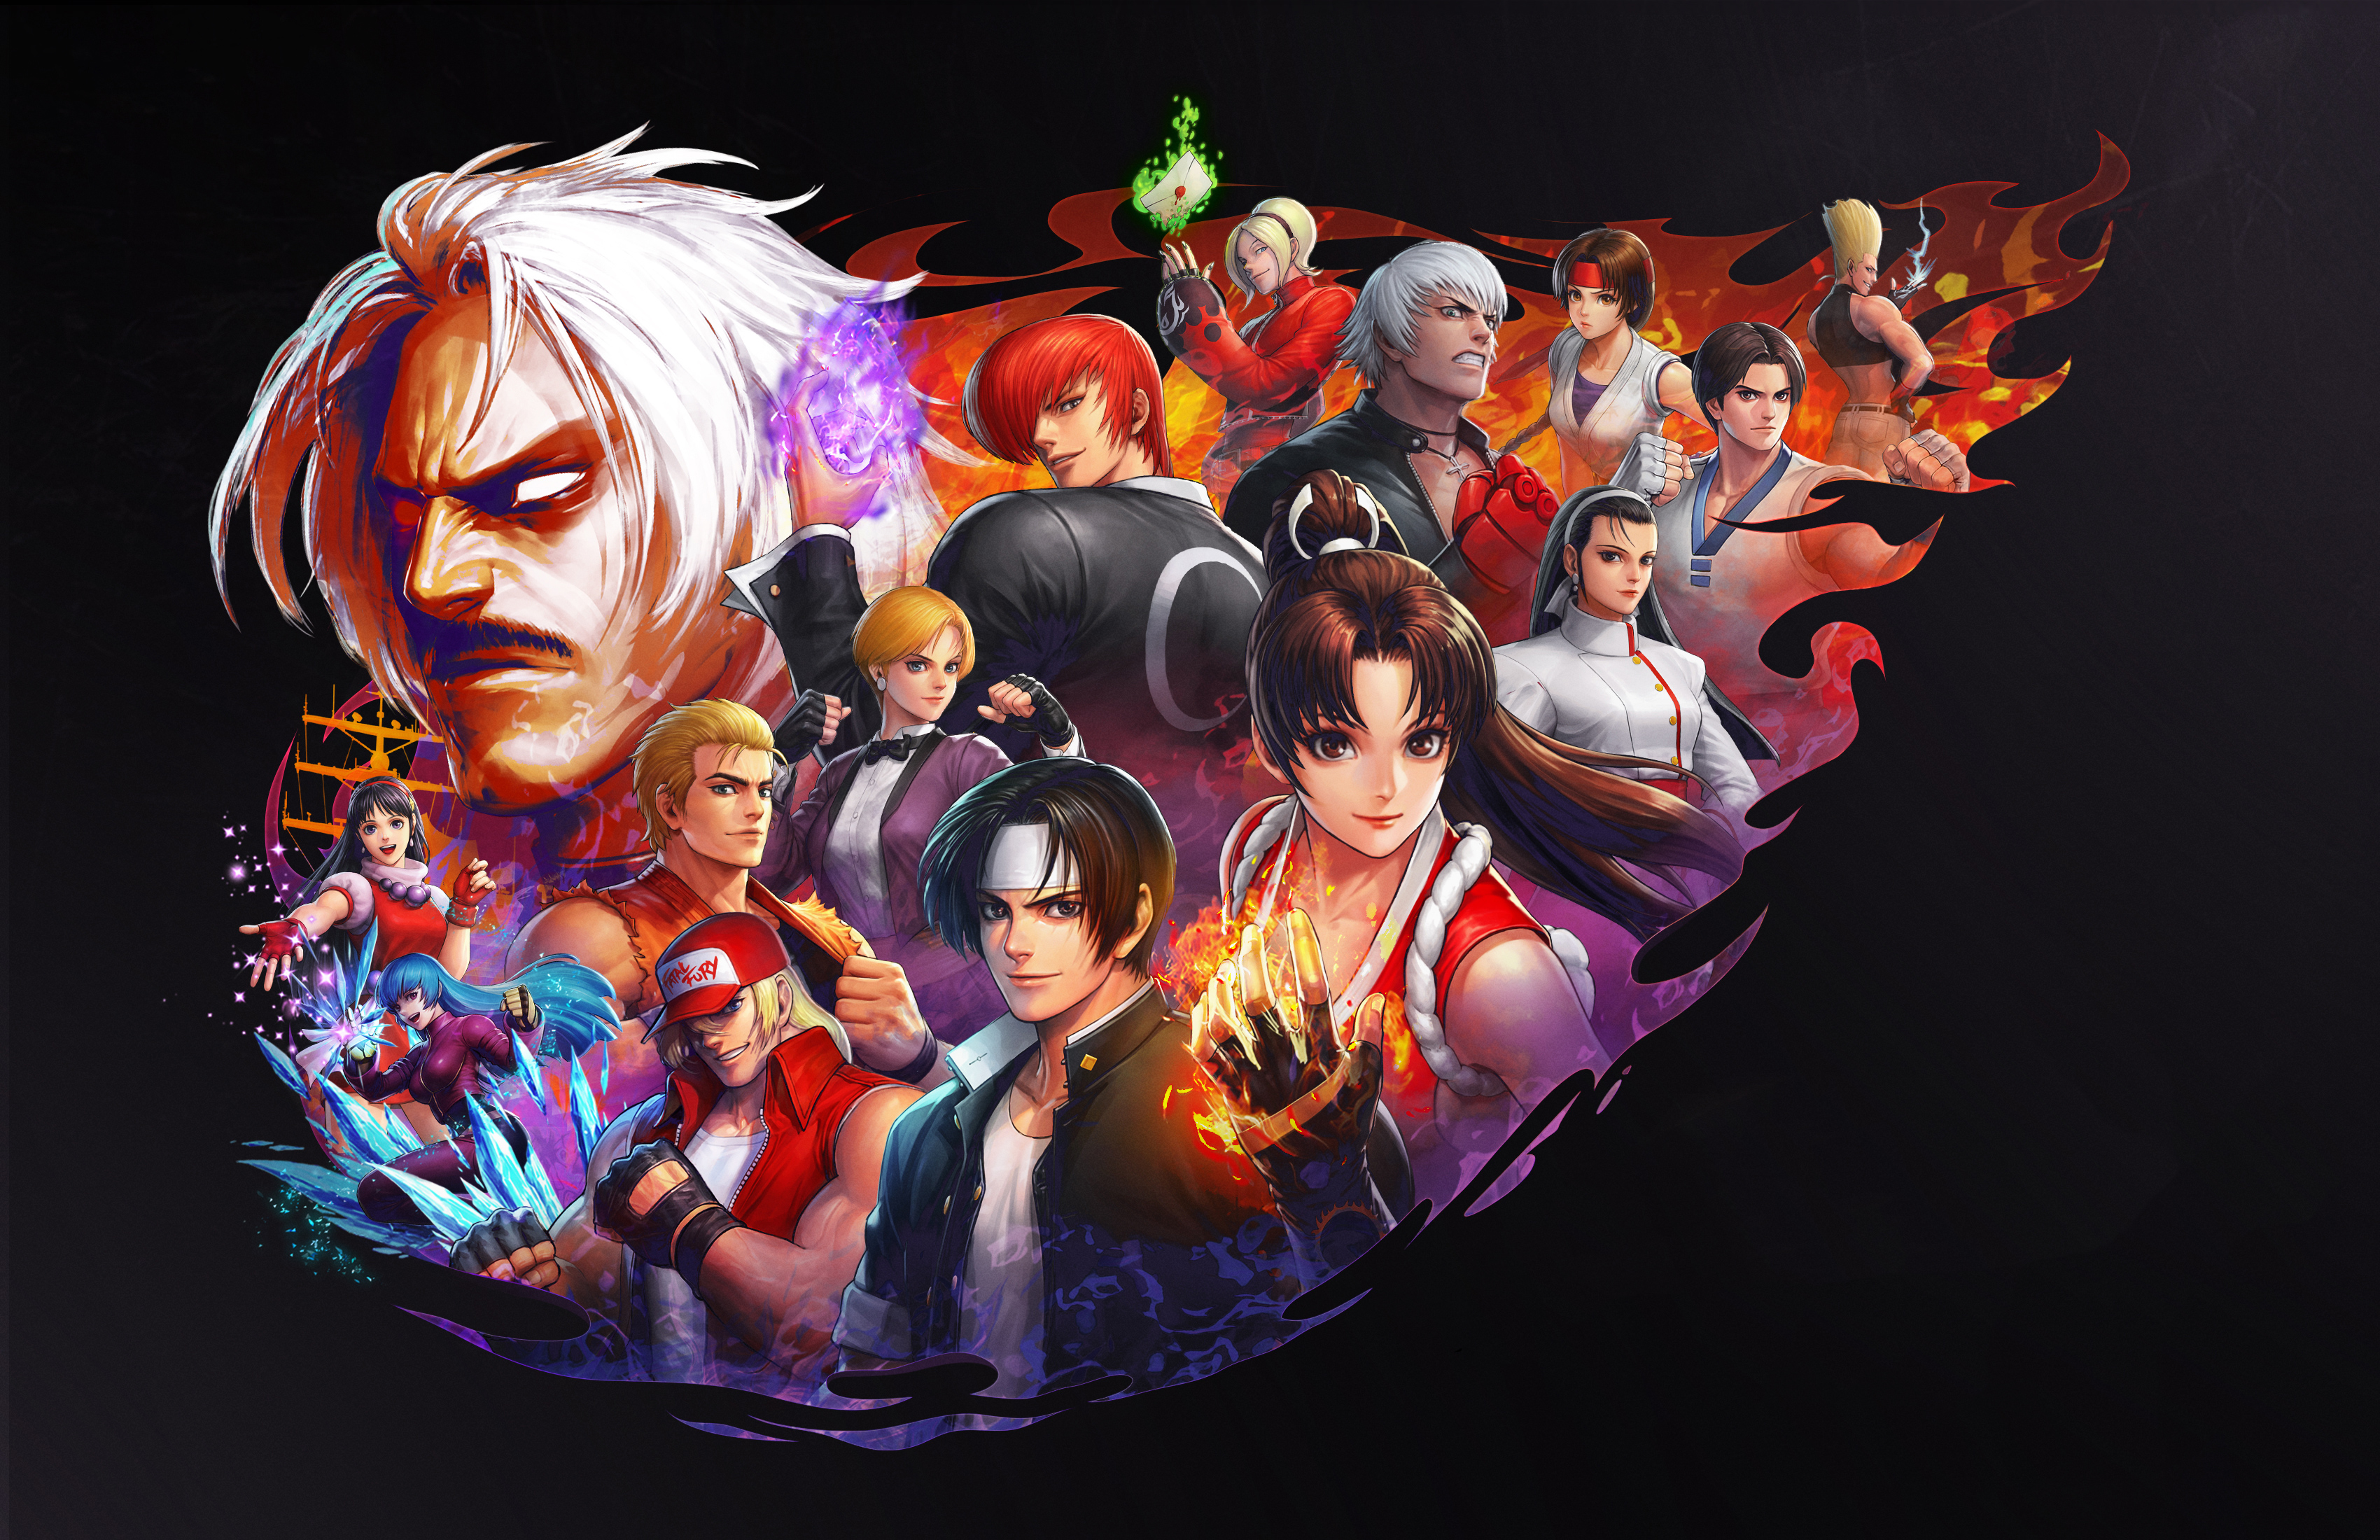 The King Of Fighters Wallpaper Posted By Ryan Johnson